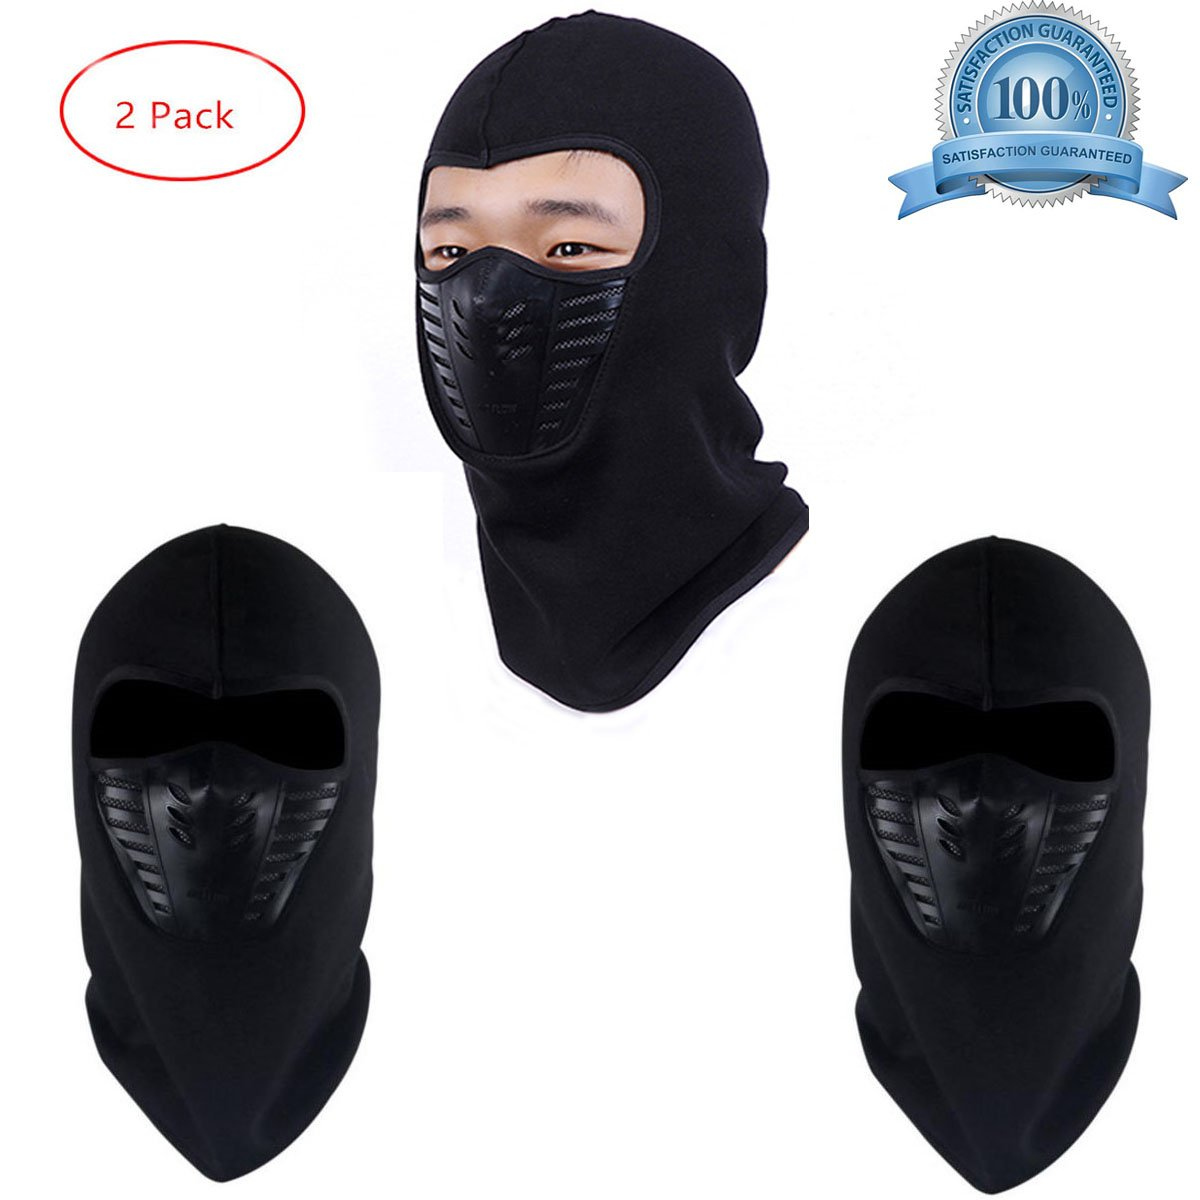 Balaclava Full Face Mask Winter Face Cover Hat Helmet with Breathable Mesh Silicone Panel Fleece Warm Anti-dust Windproof for Skiing Snowboarding Cycling for Women and Men Black (2 Pack) Hmjunboys